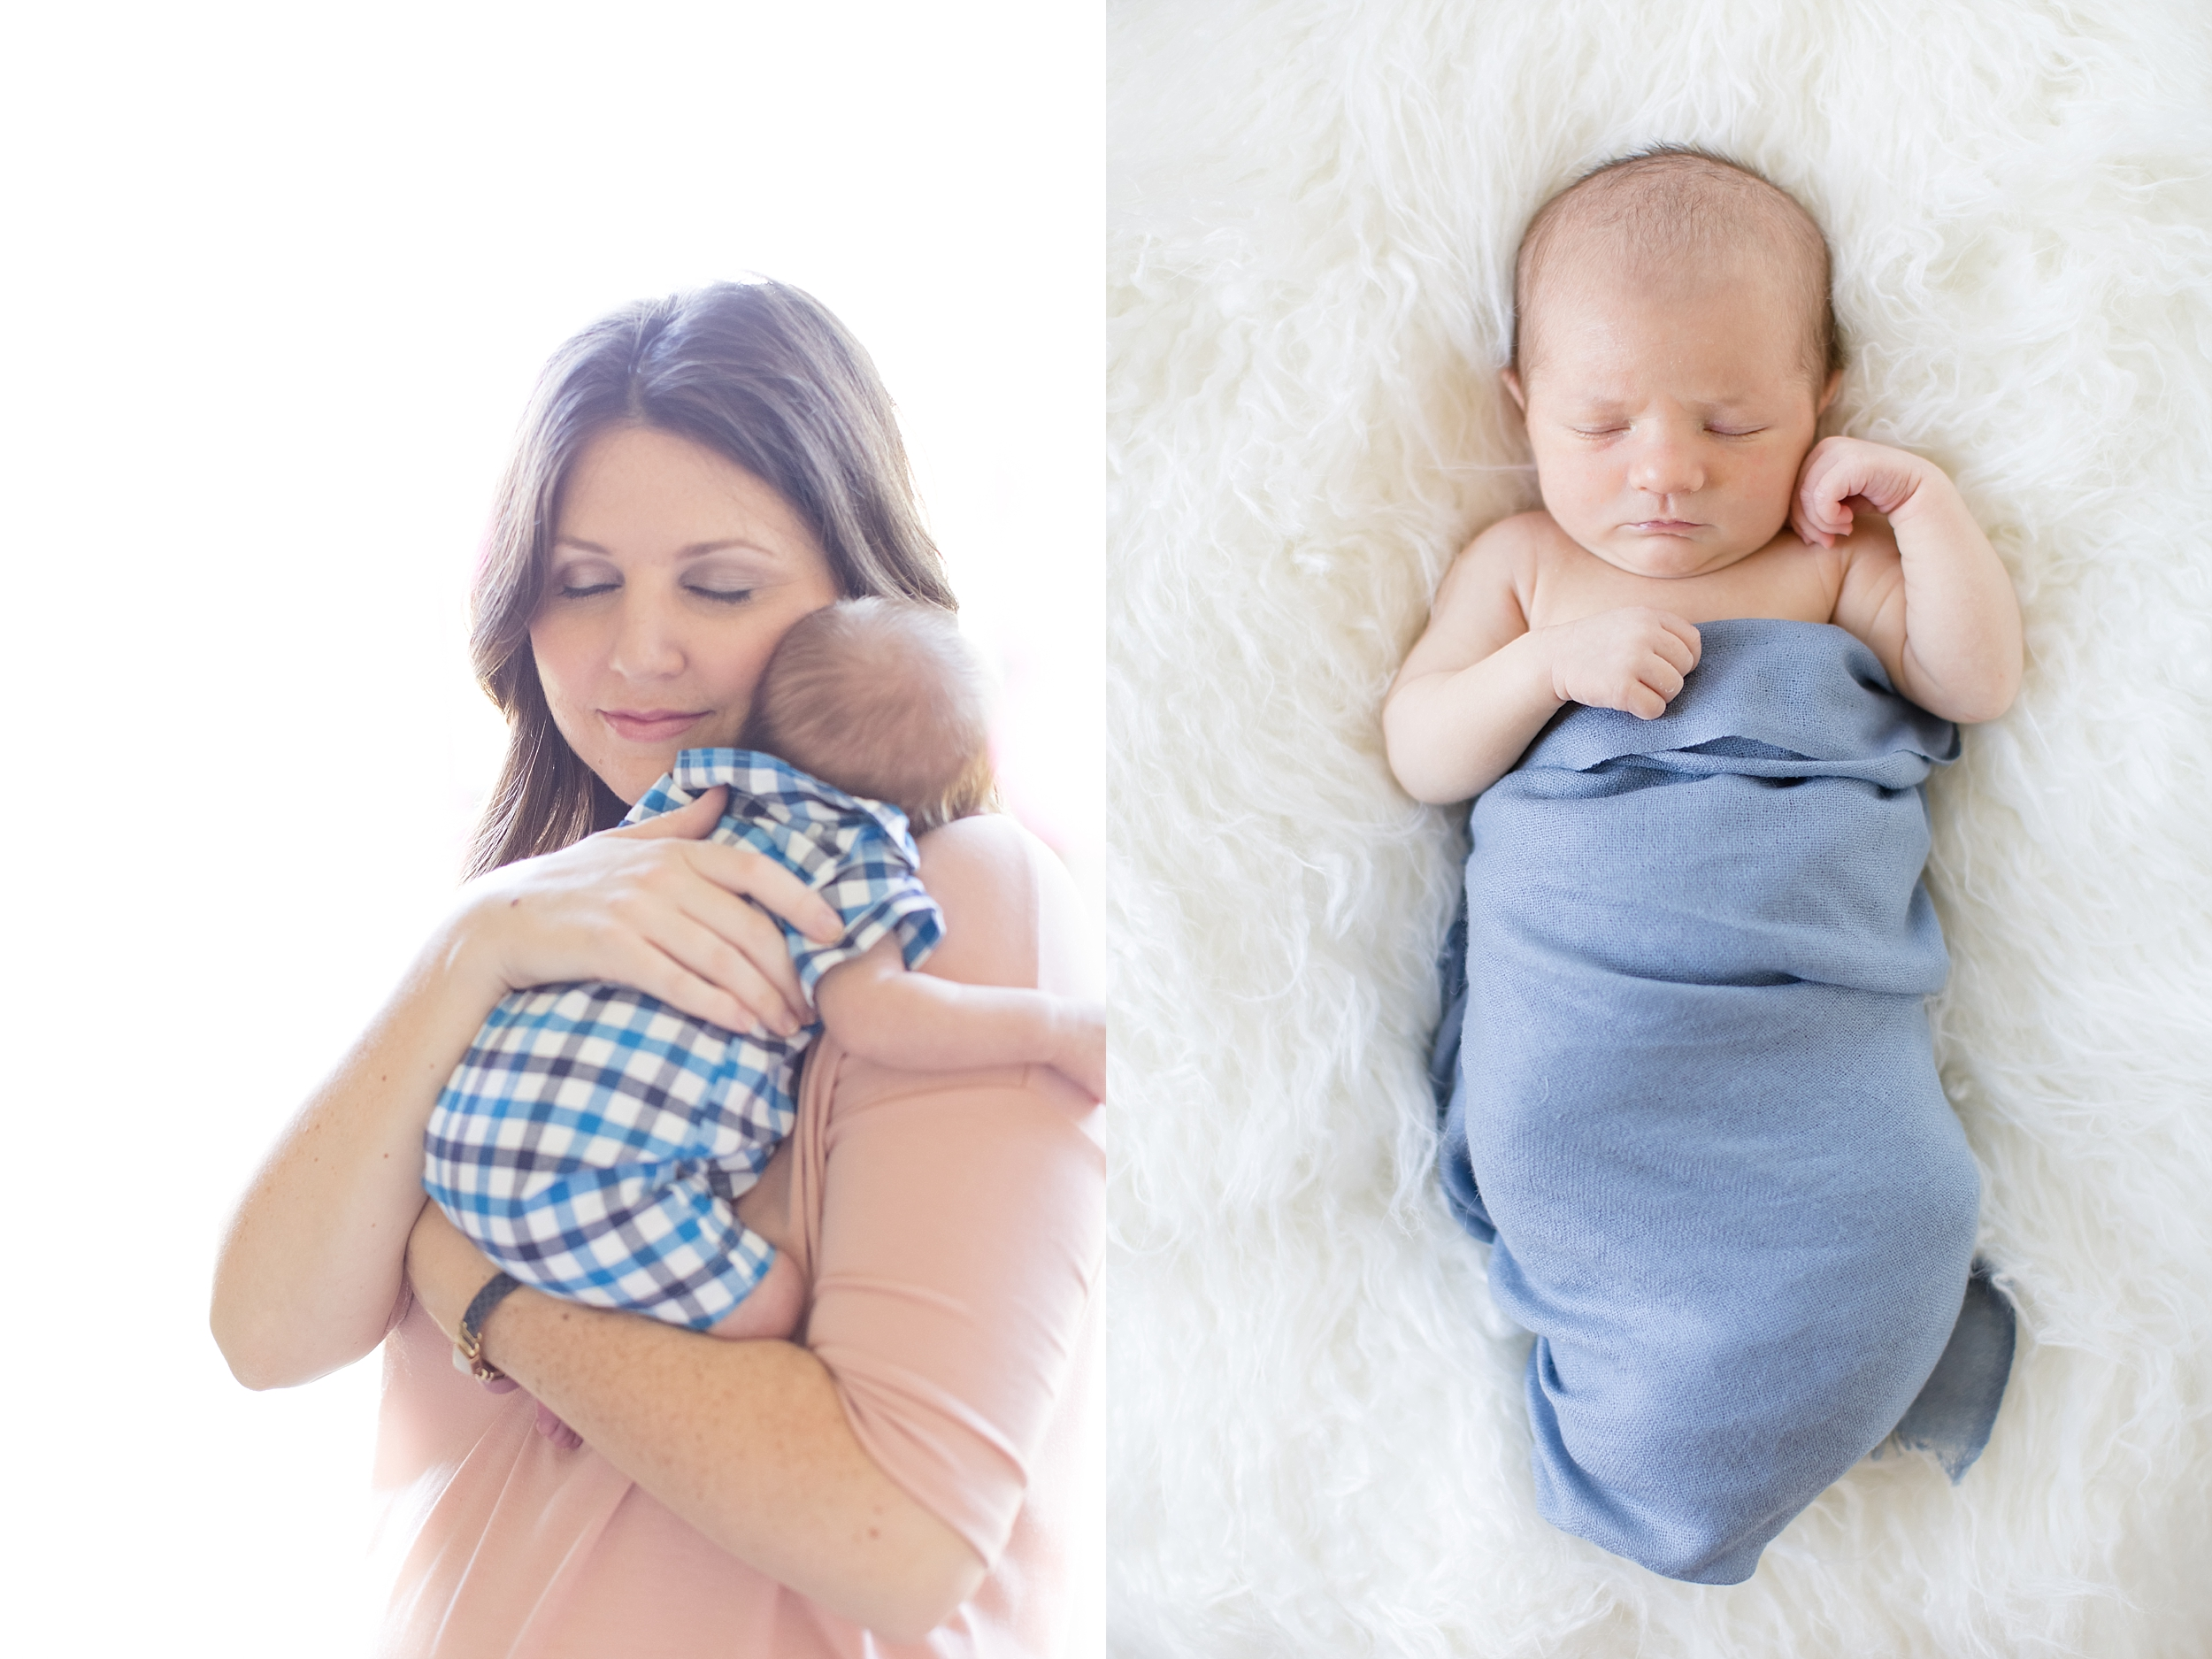 Landon-Schneider-Photography-Newborn-Session-Texas_0130.jpg